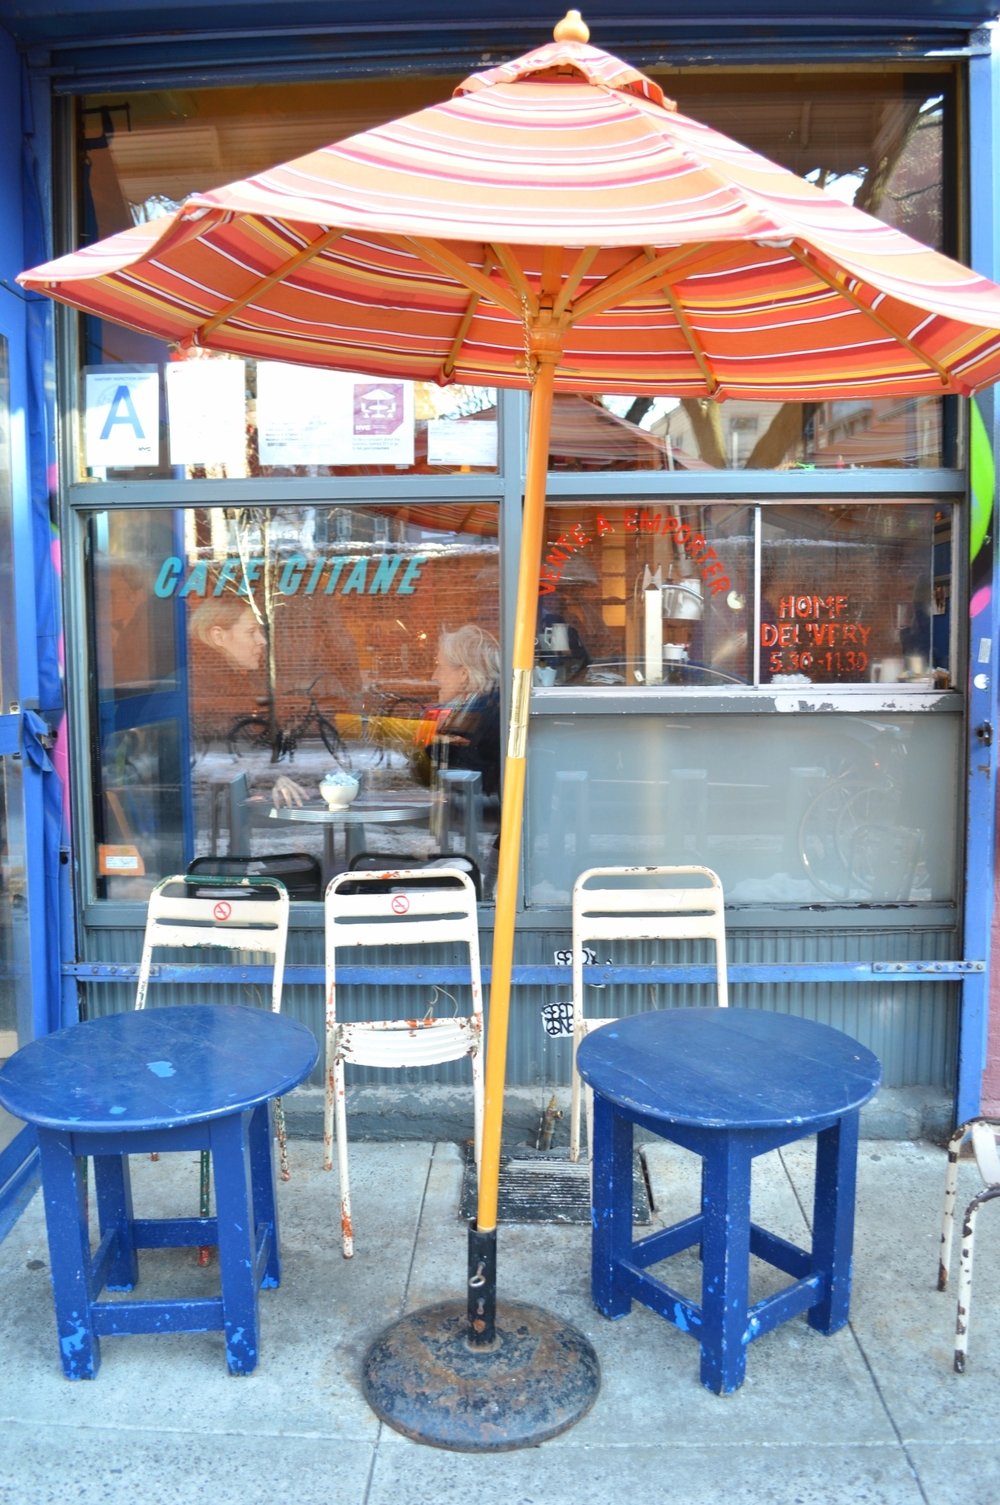 LaurenSchwaiger-Travel-Blog-Cafe-Gitane-Sidewalk-NYC.jpg